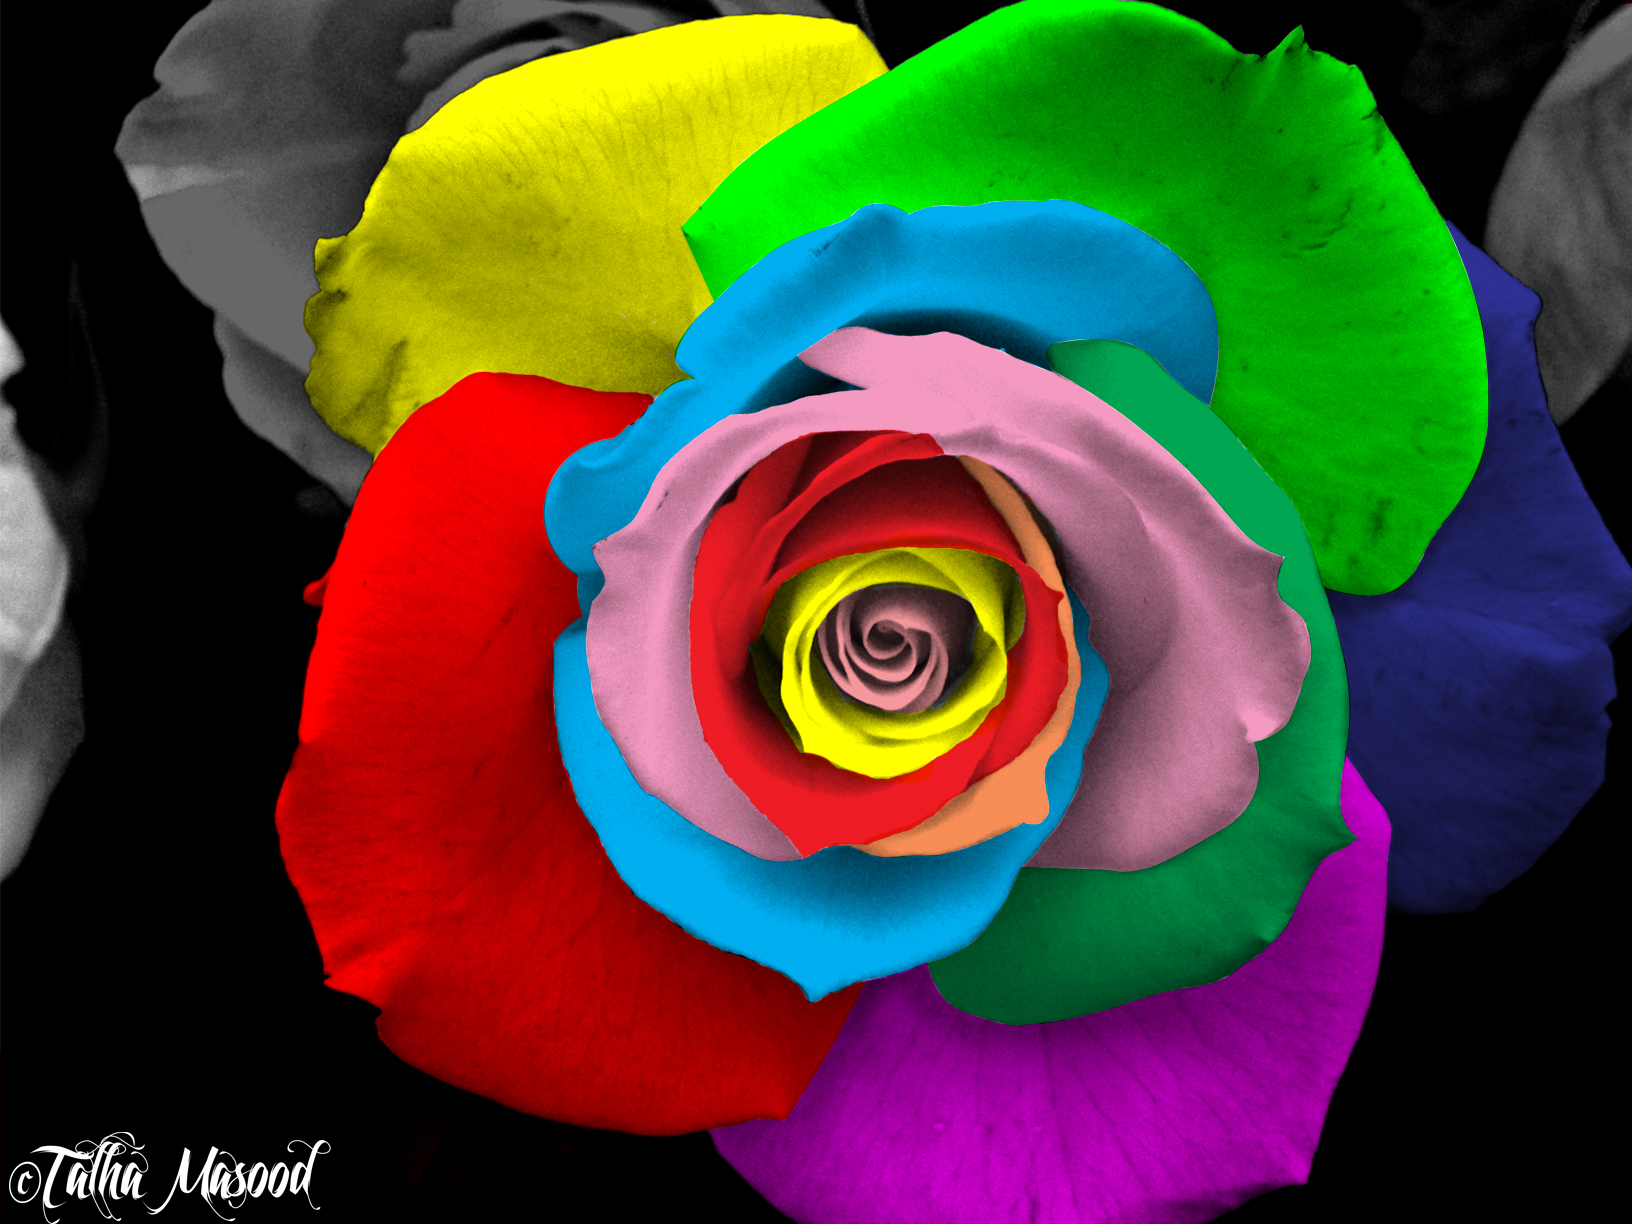 Colorful rose by supercooltalha on deviantart for Colorful roses images